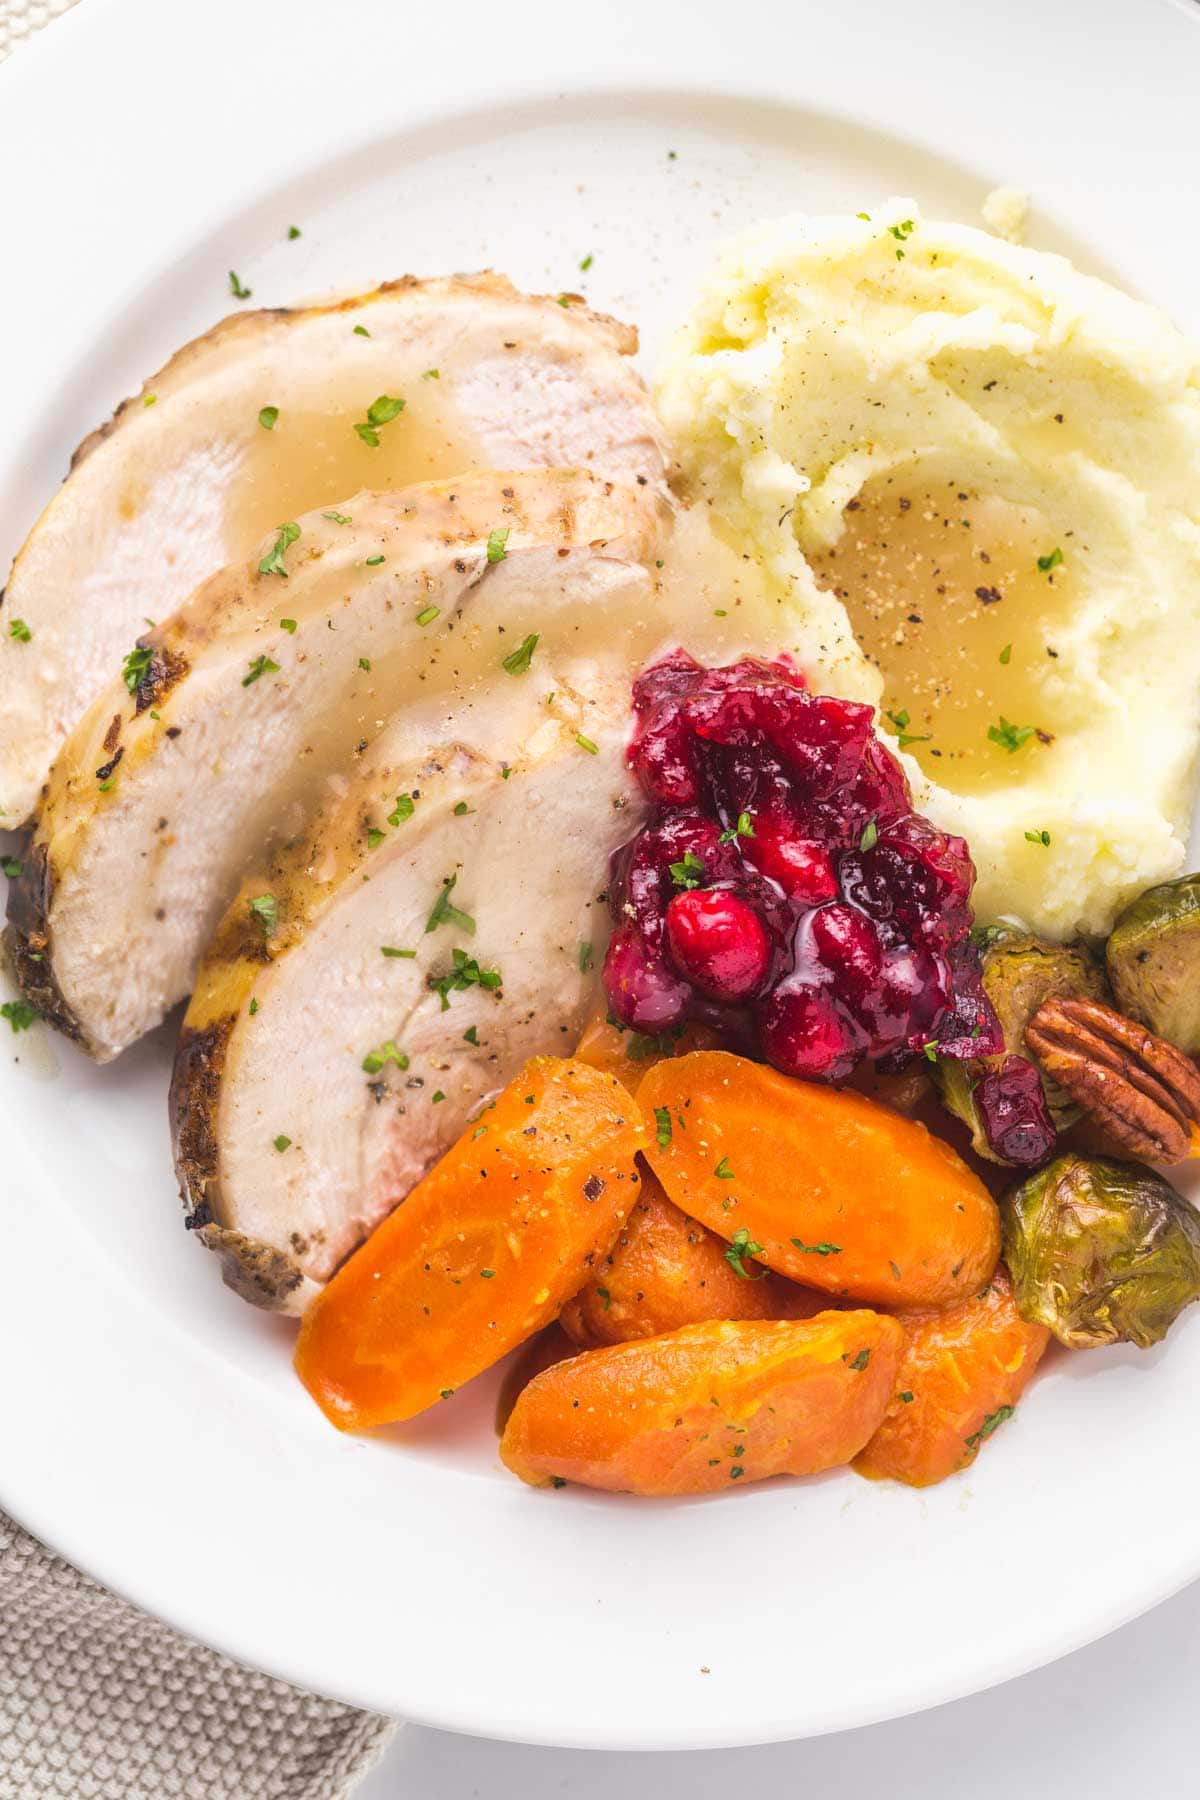 Plated turkey sliced with mashed potatoes, cranberry sauce, and glazed carrots